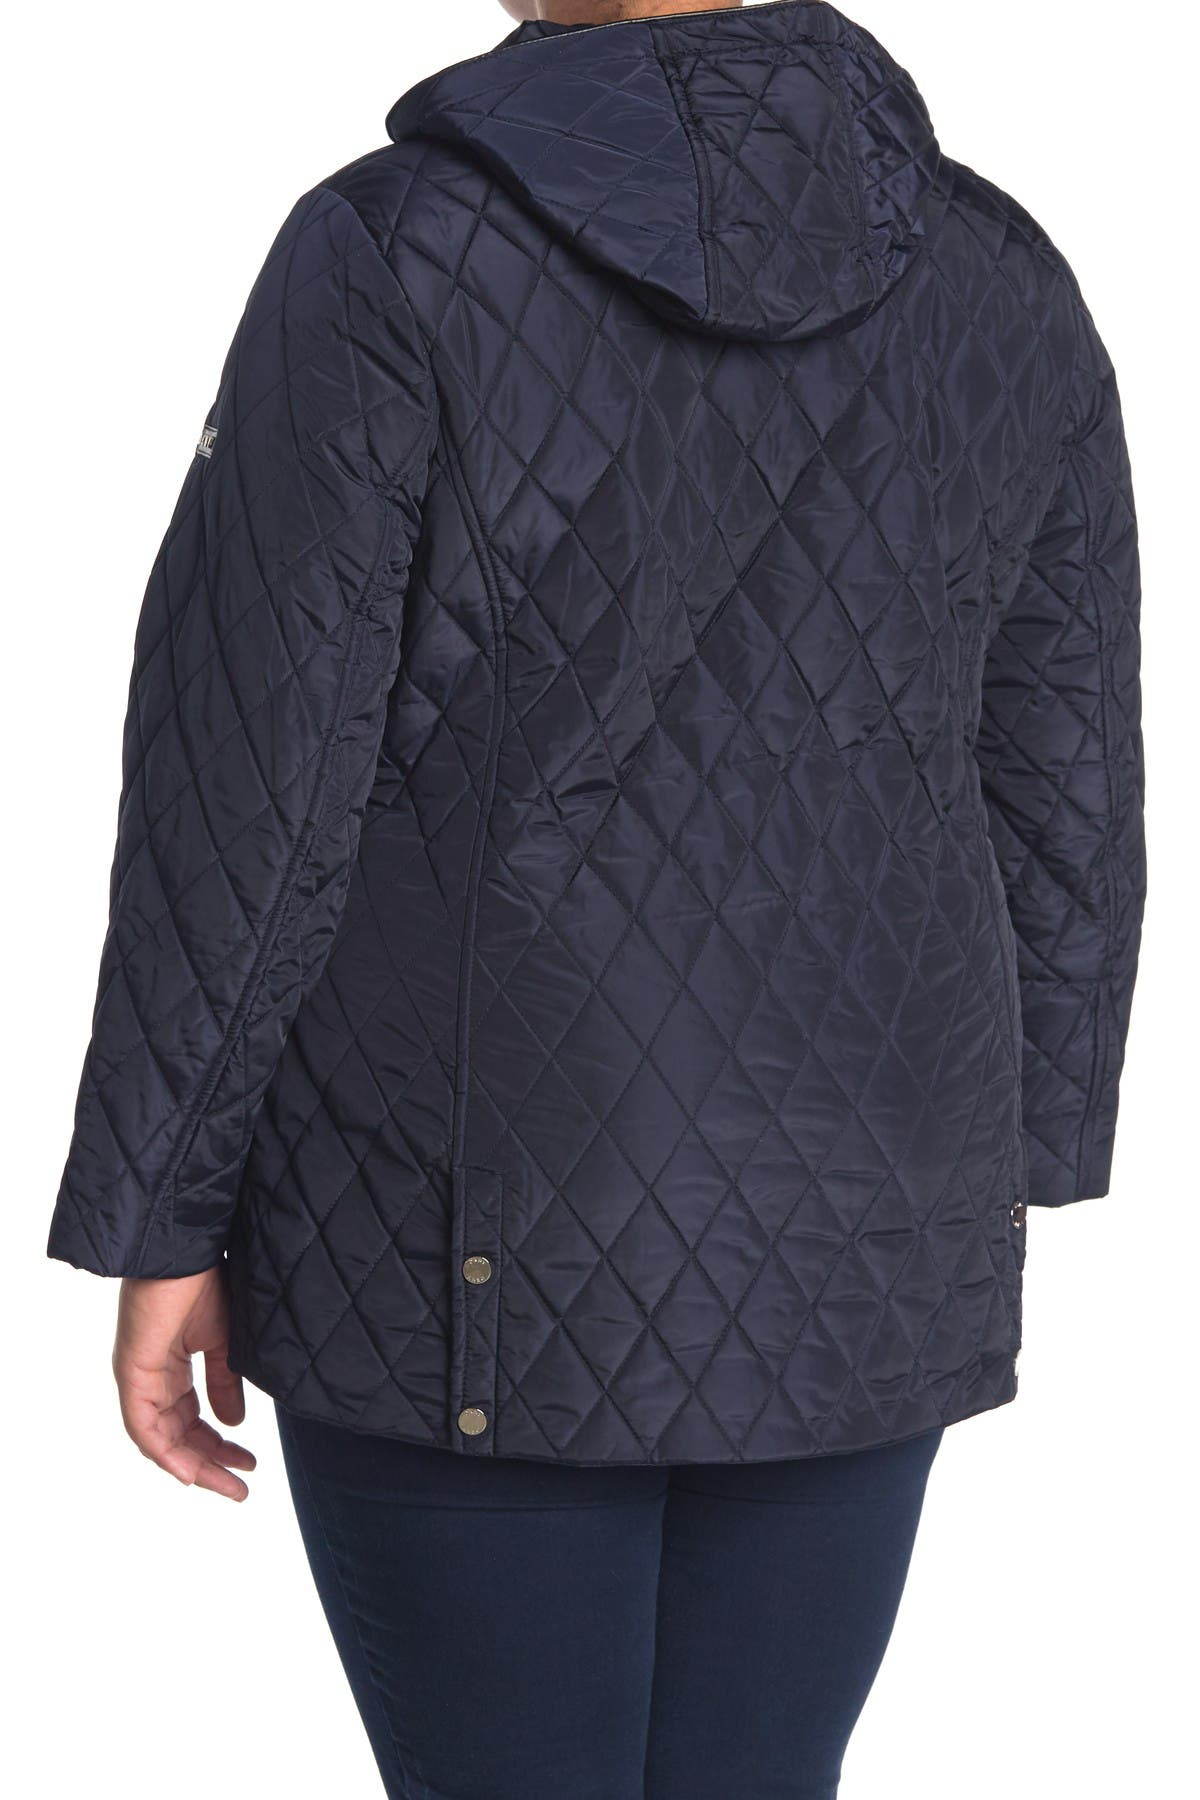 DKNYC Quilted Jacket